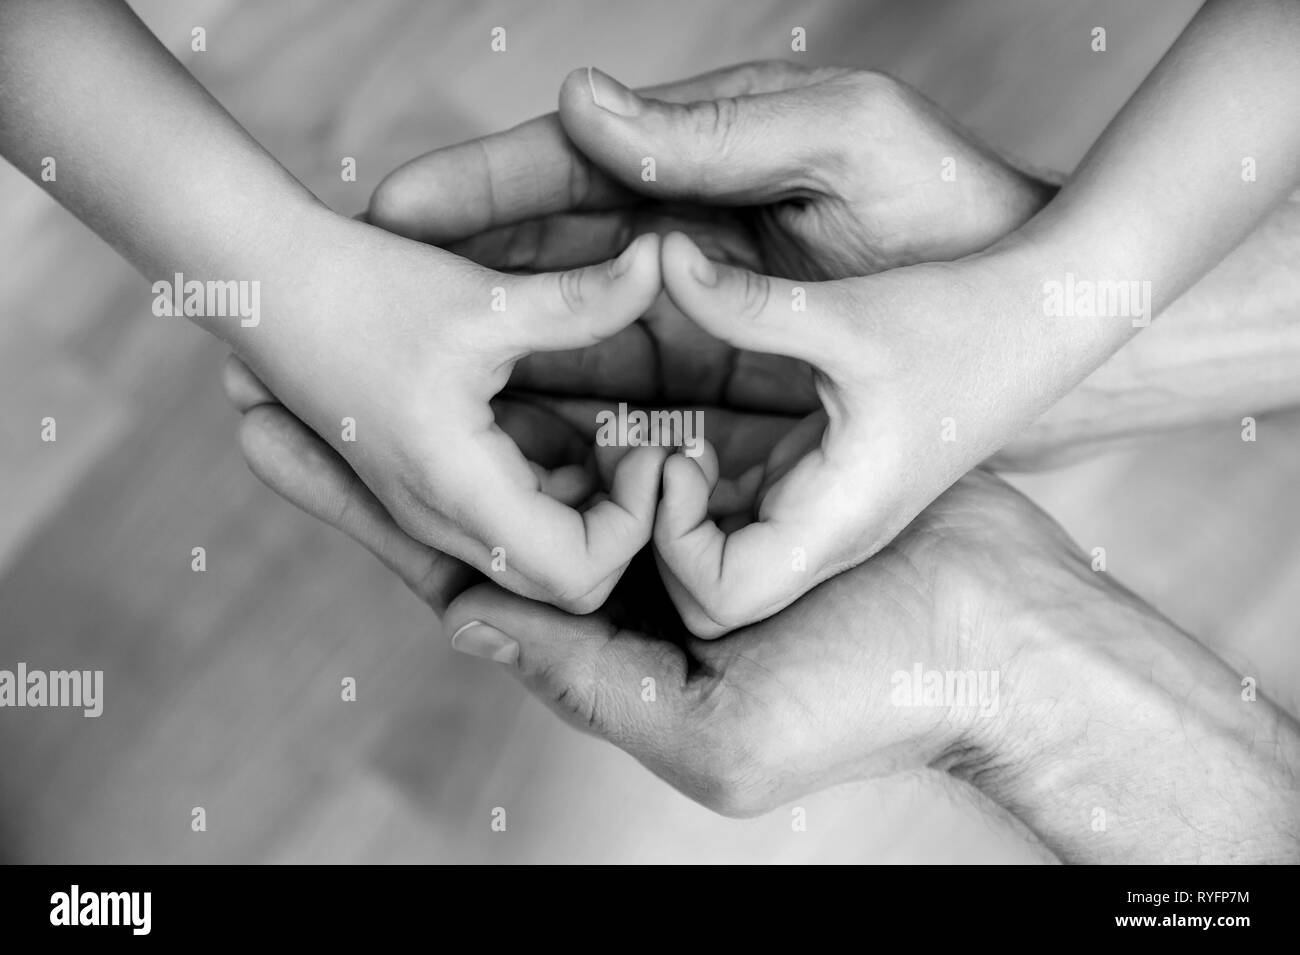 Children's hands form a heart in the hands of an adult. Black and white. - Stock Image